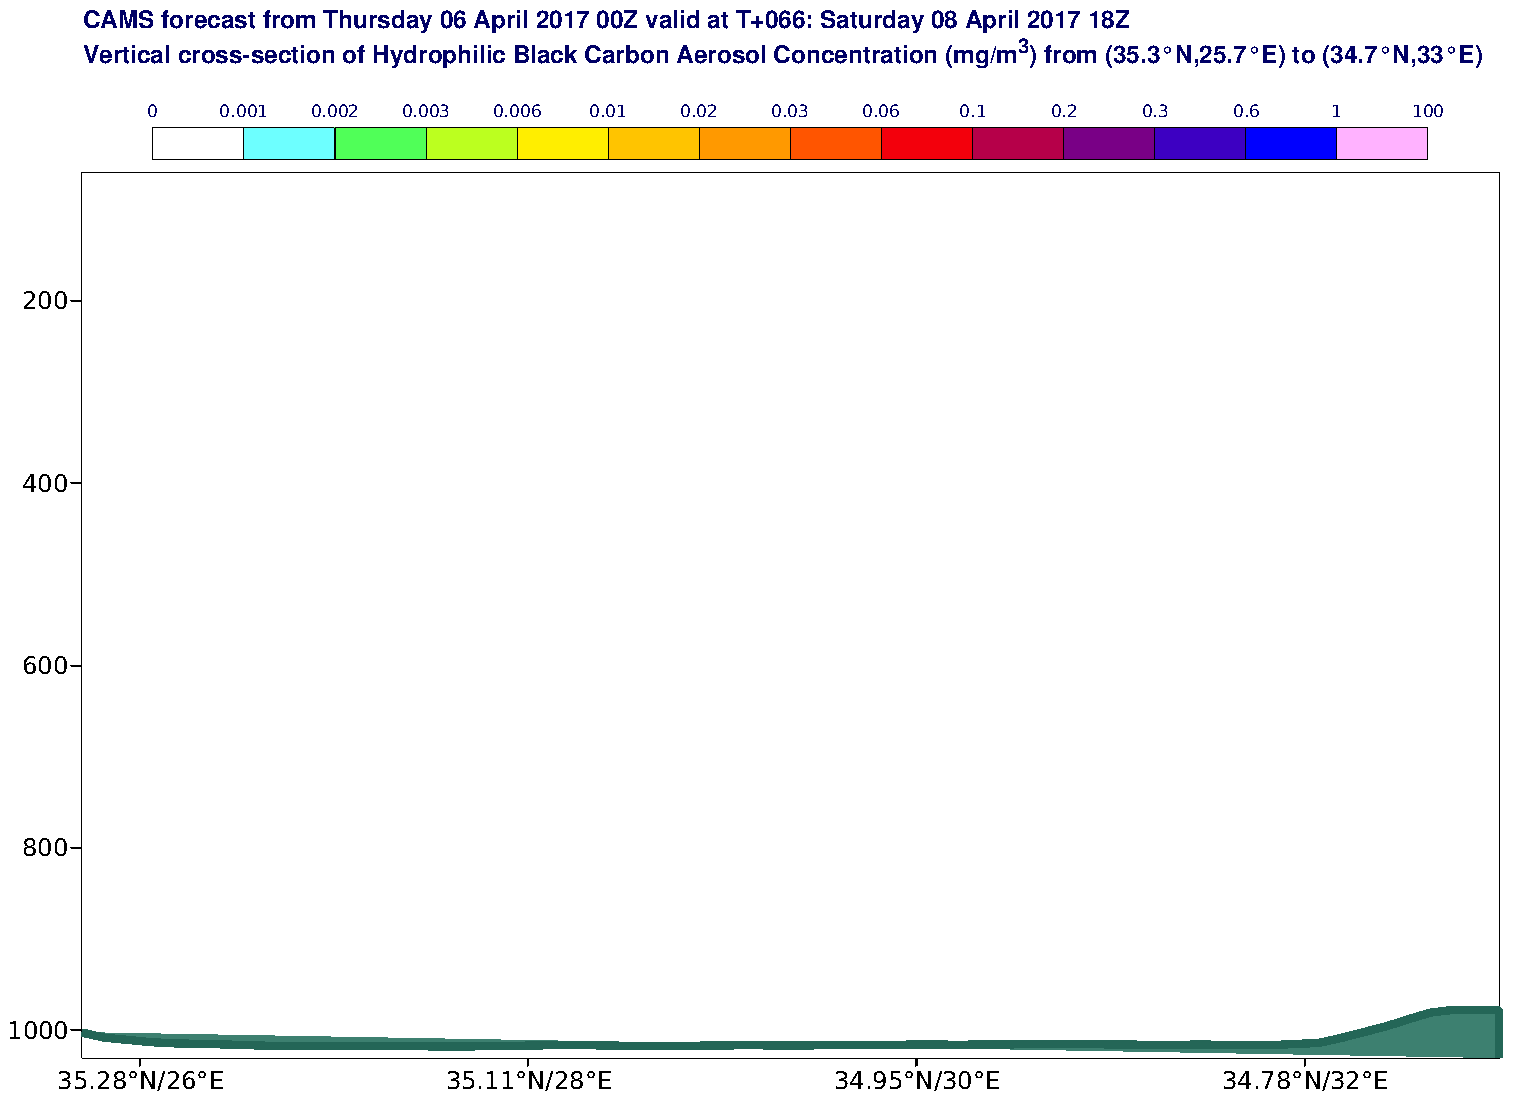 Vertical cross-section of Hydrophilic Black Carbon Aerosol Concentration (mg/m3) valid at T66 - 2017-04-08 18:00